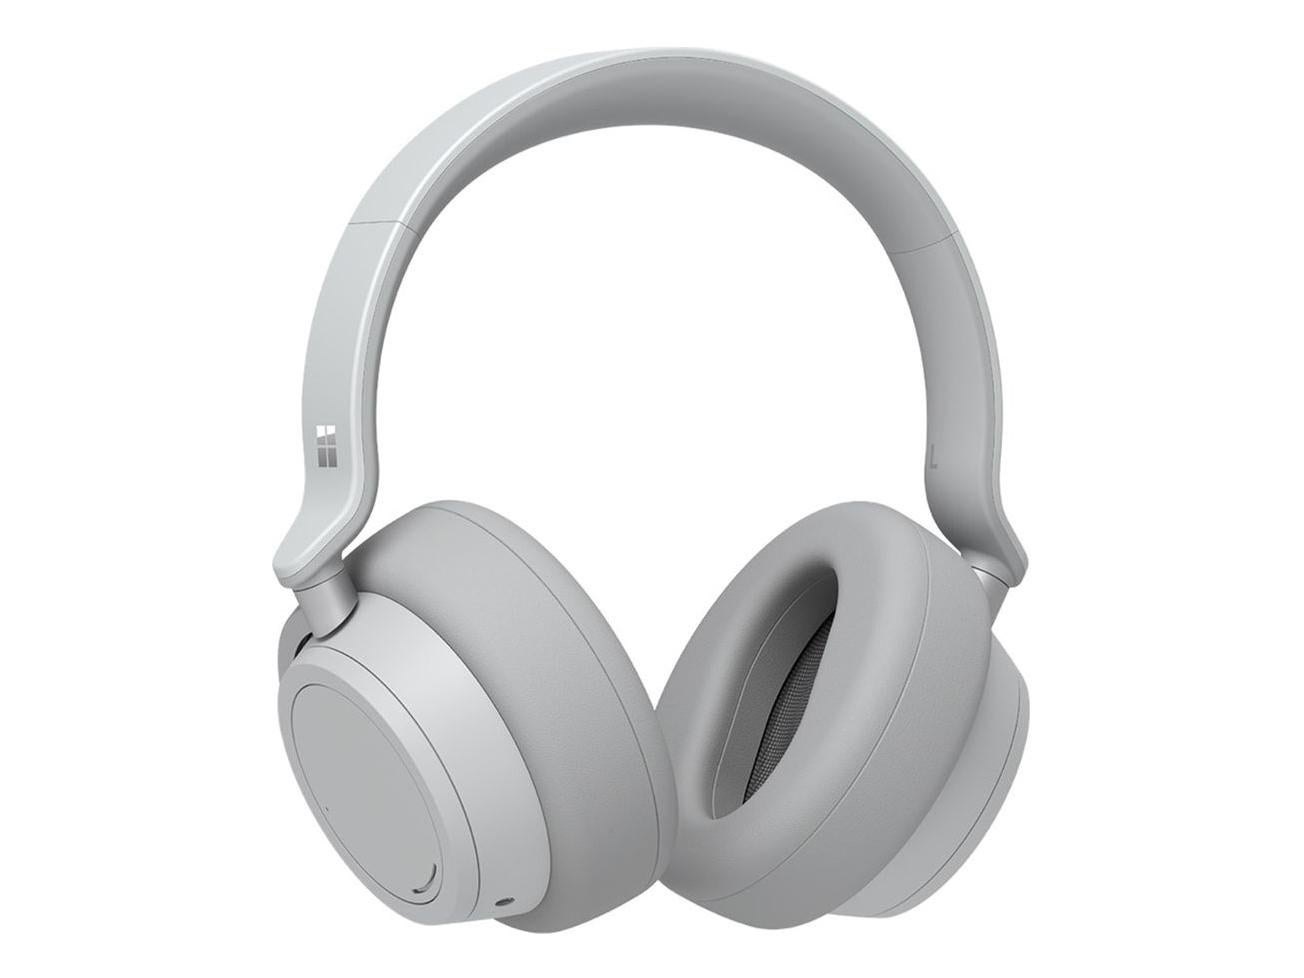 Best noise-cancelling headphones for trains and plane flights